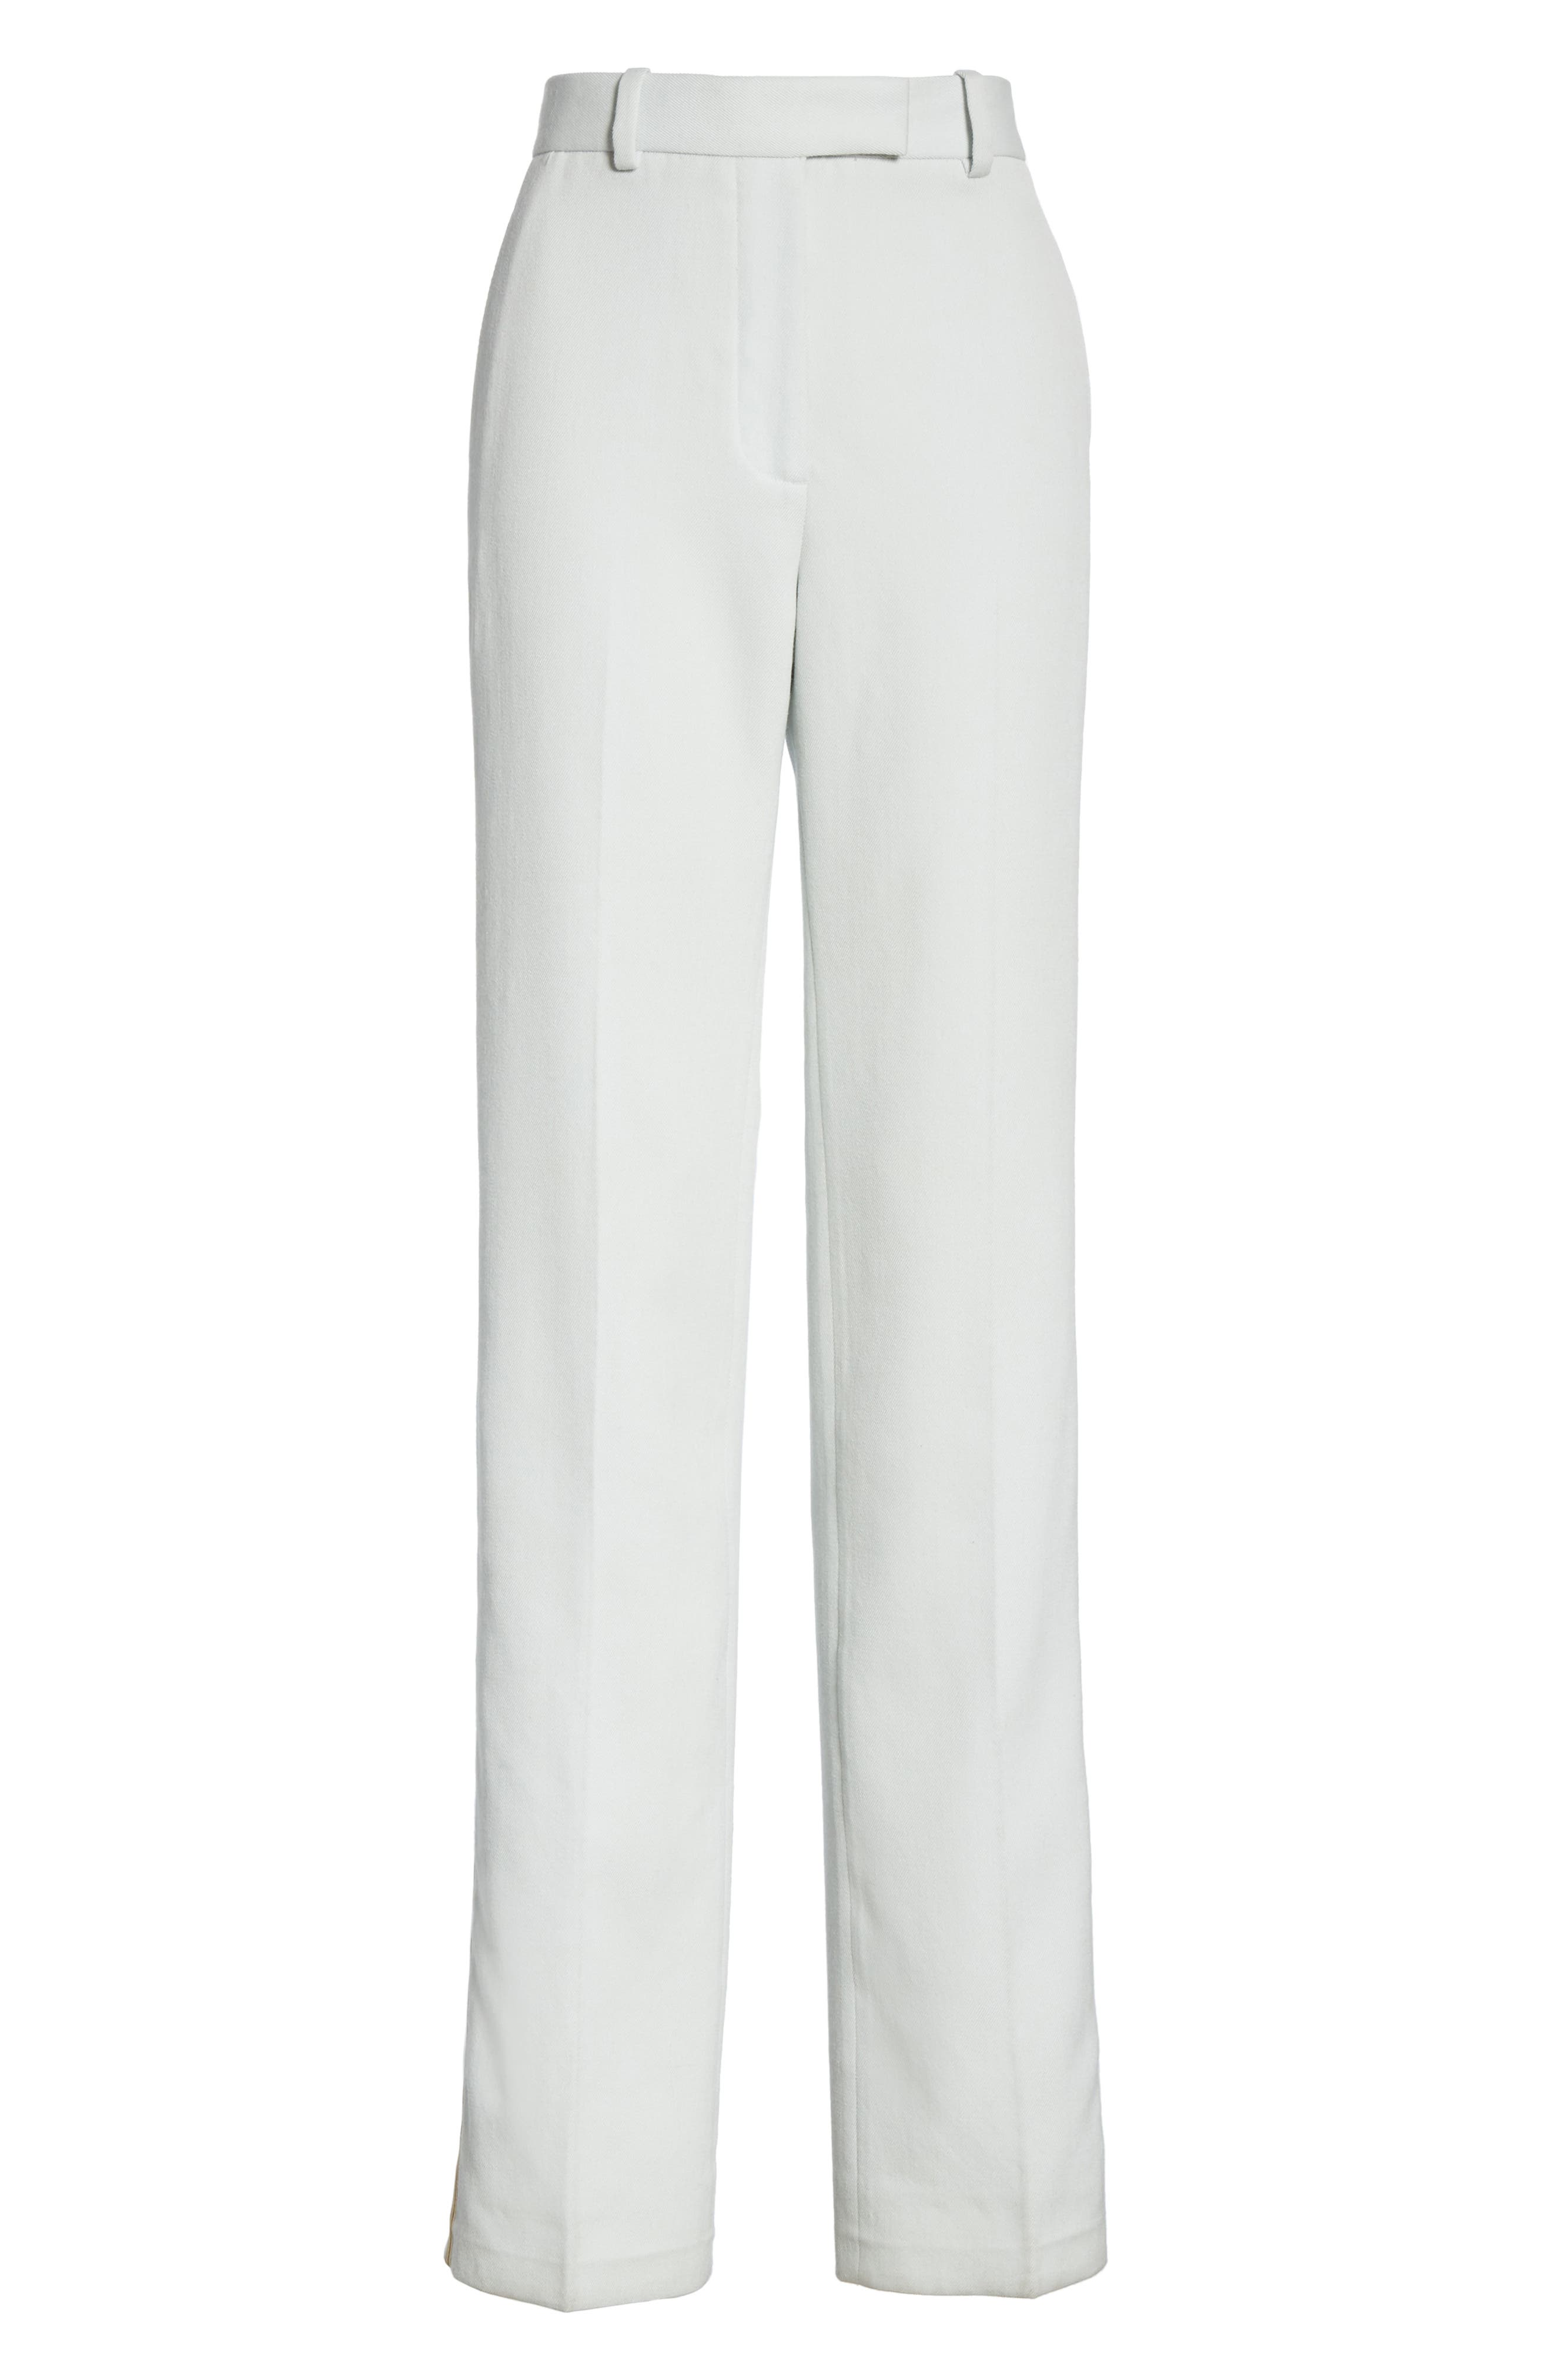 Wool Twill Marching Band Pants,                             Alternate thumbnail 6, color,                             LIGHT AQUA